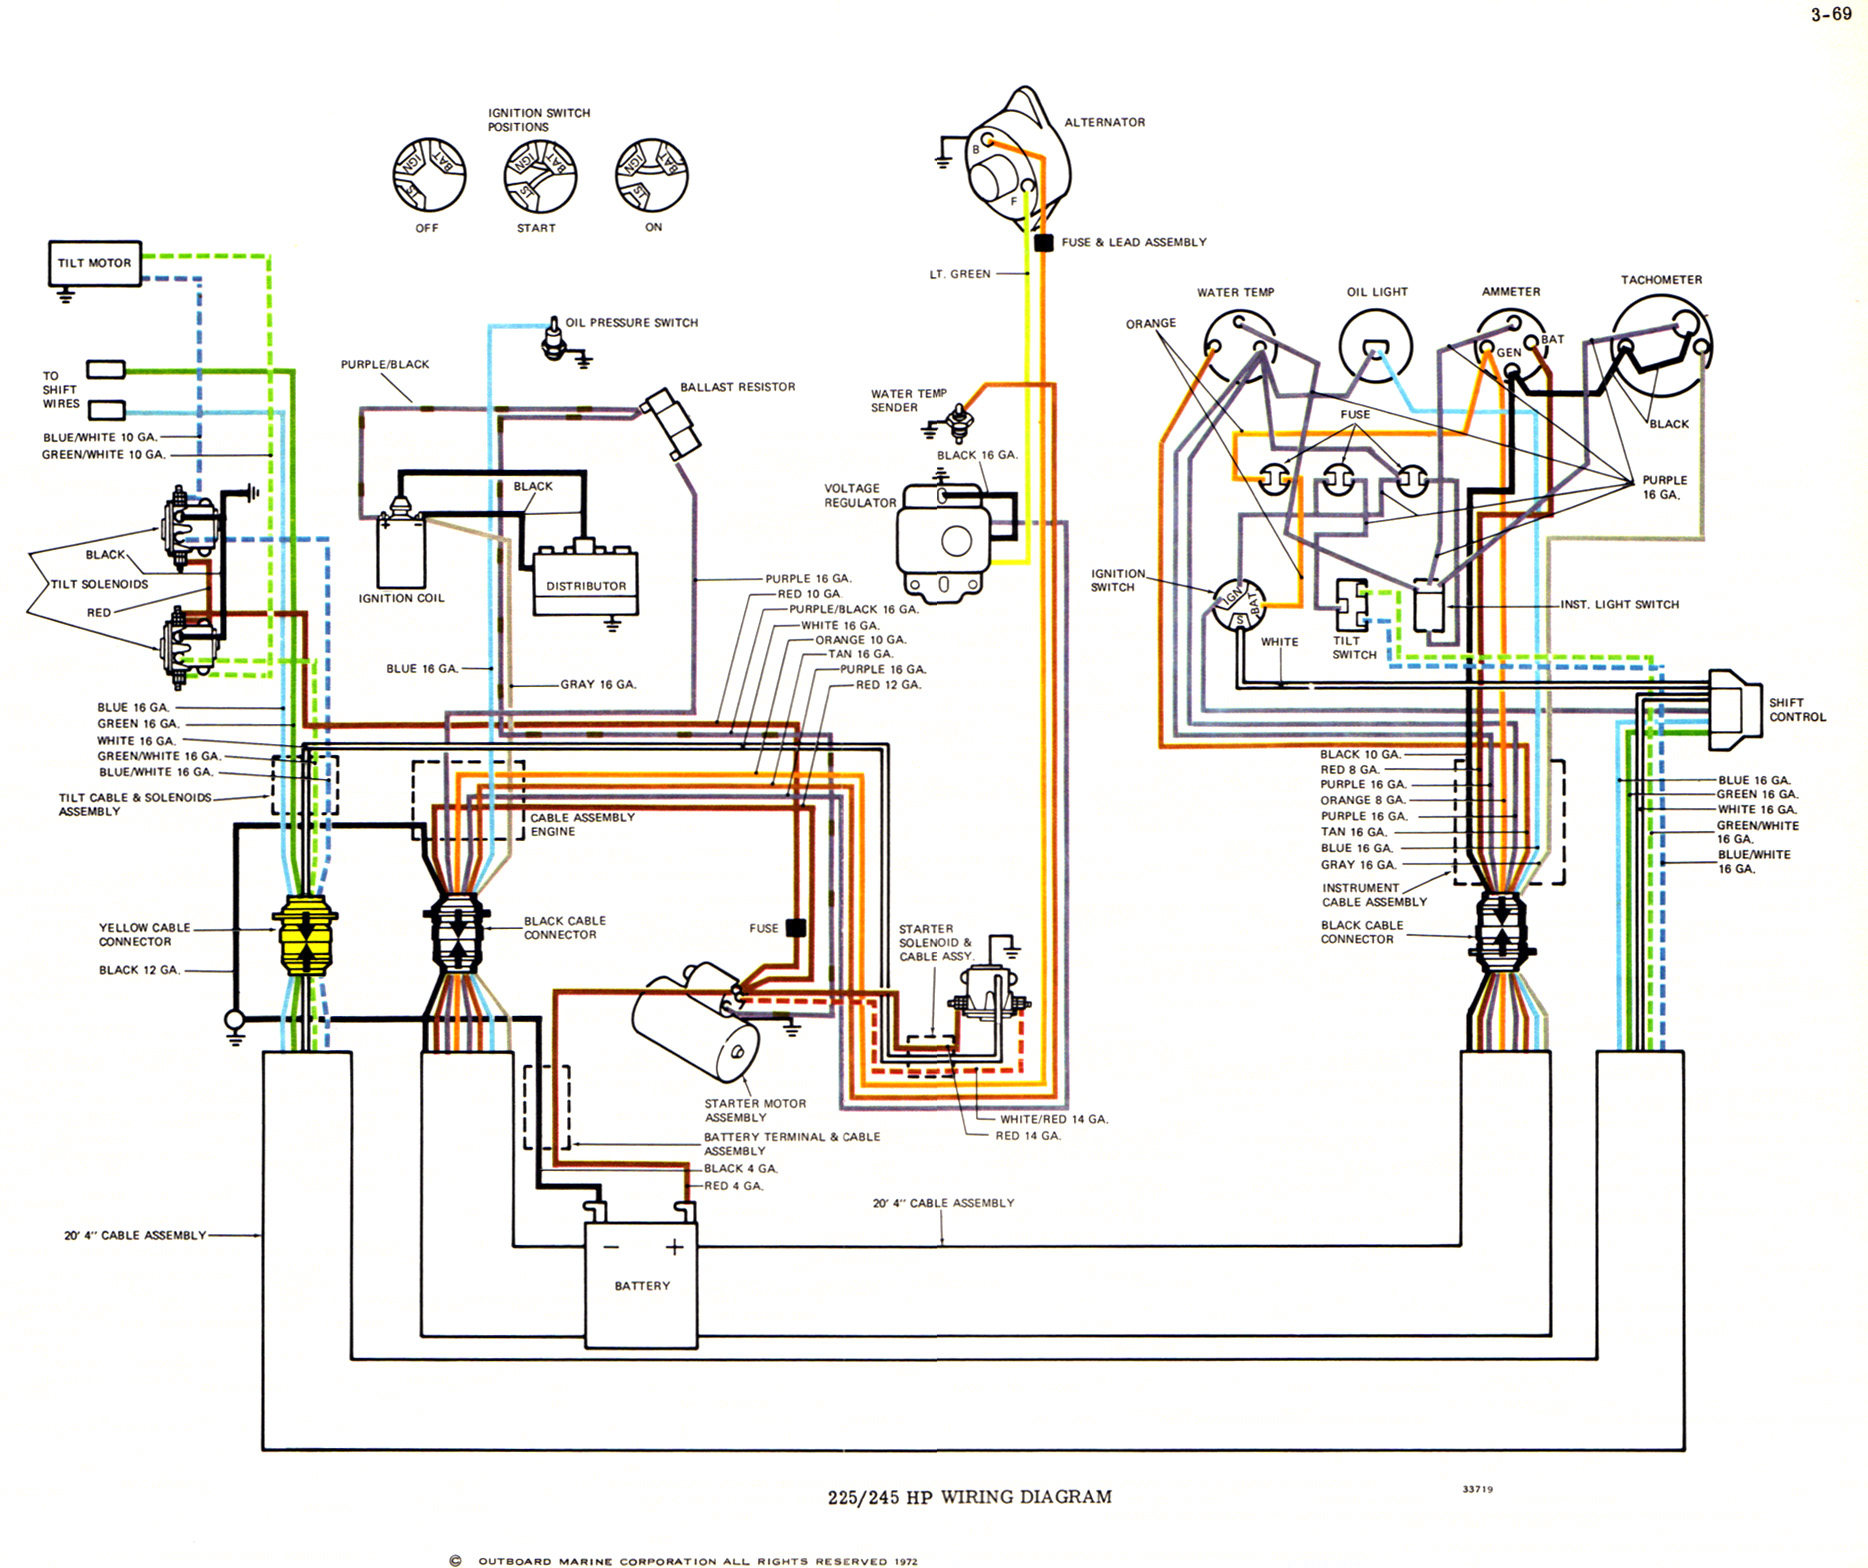 outboard motor wiring diagram - schematics and wiring diagrams, Wiring diagram